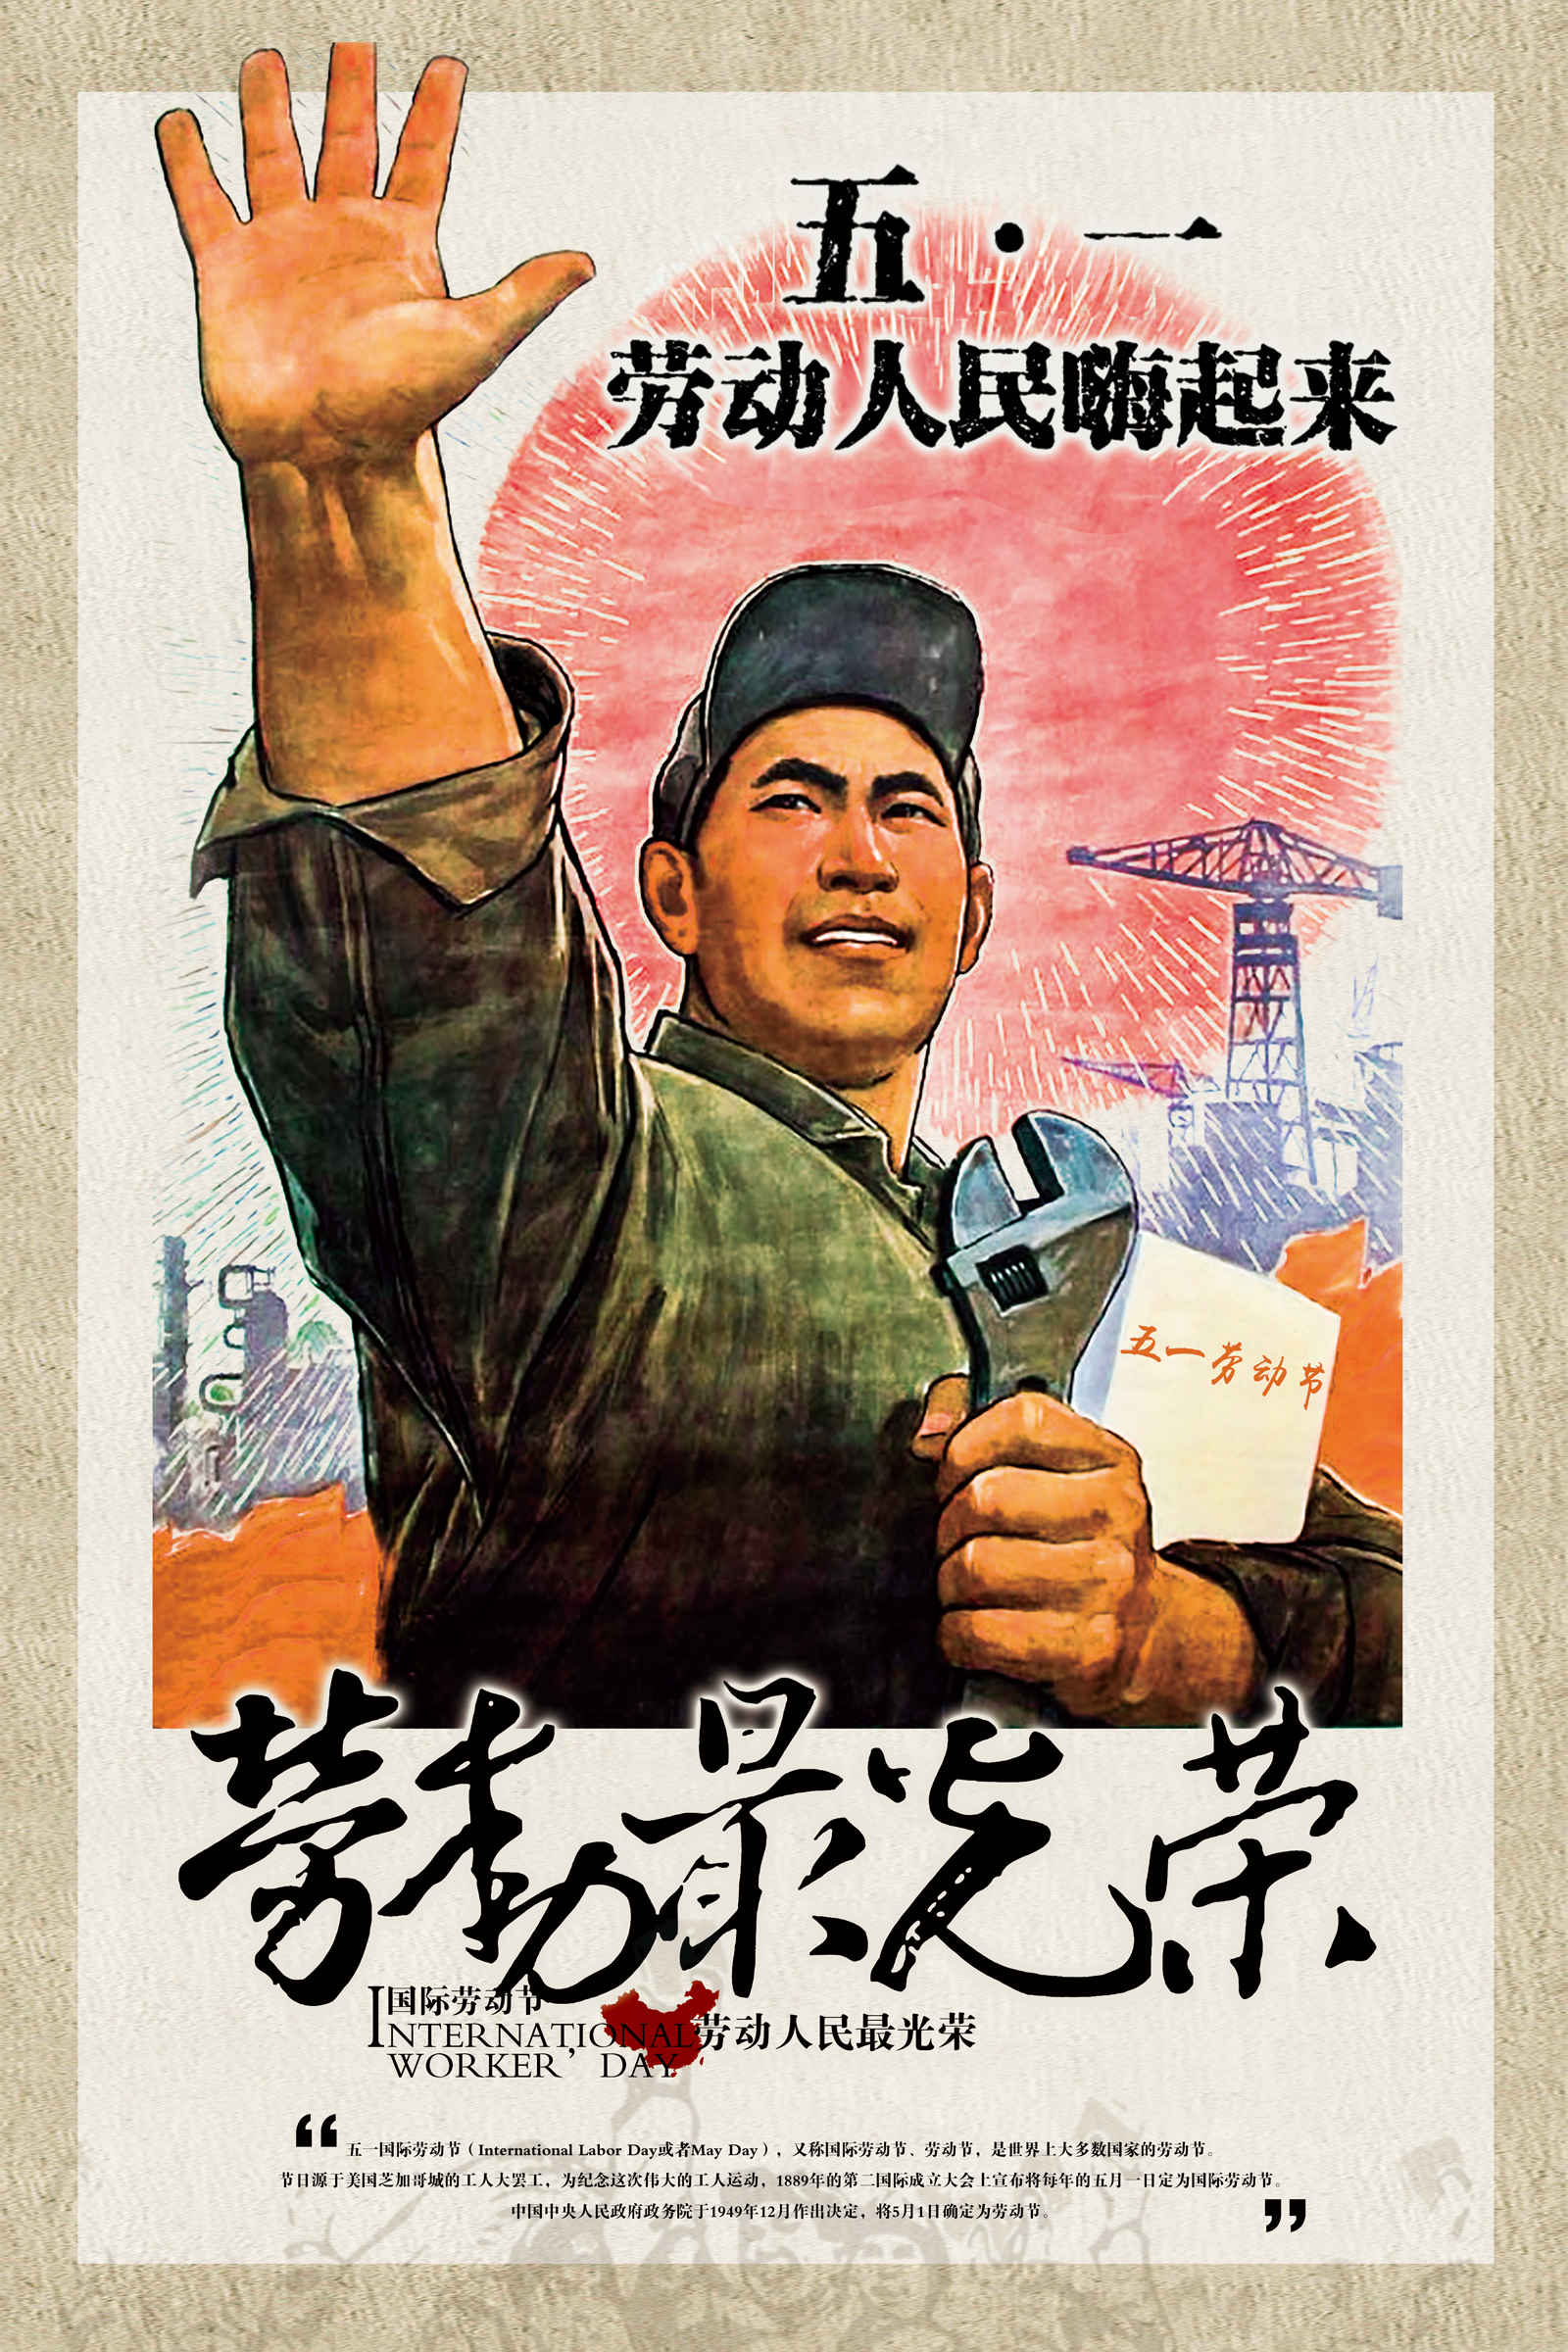 Retro style work people propaganda poster PSD File Free Download